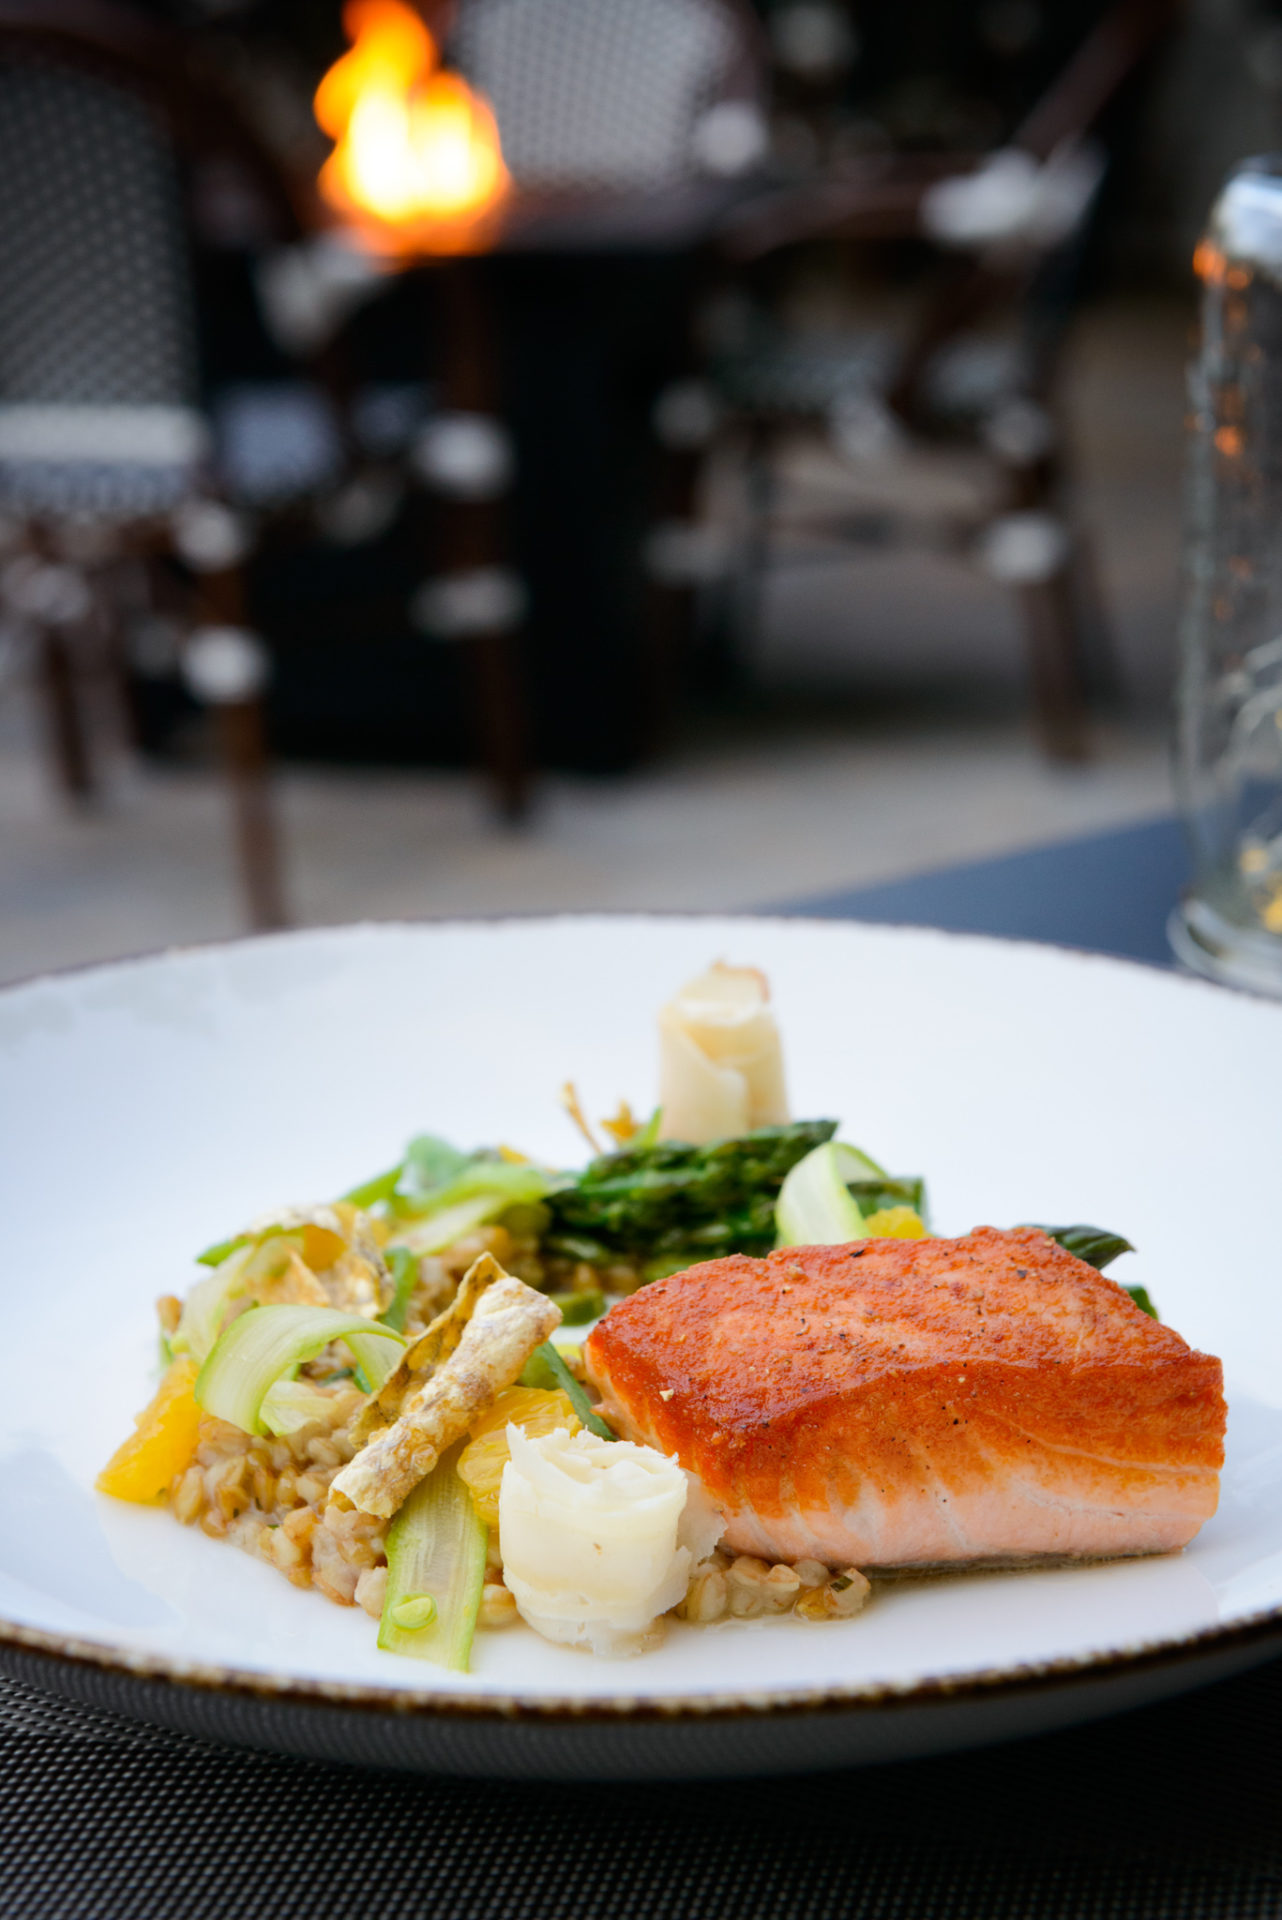 Salmon-with-Fireplace-low-res